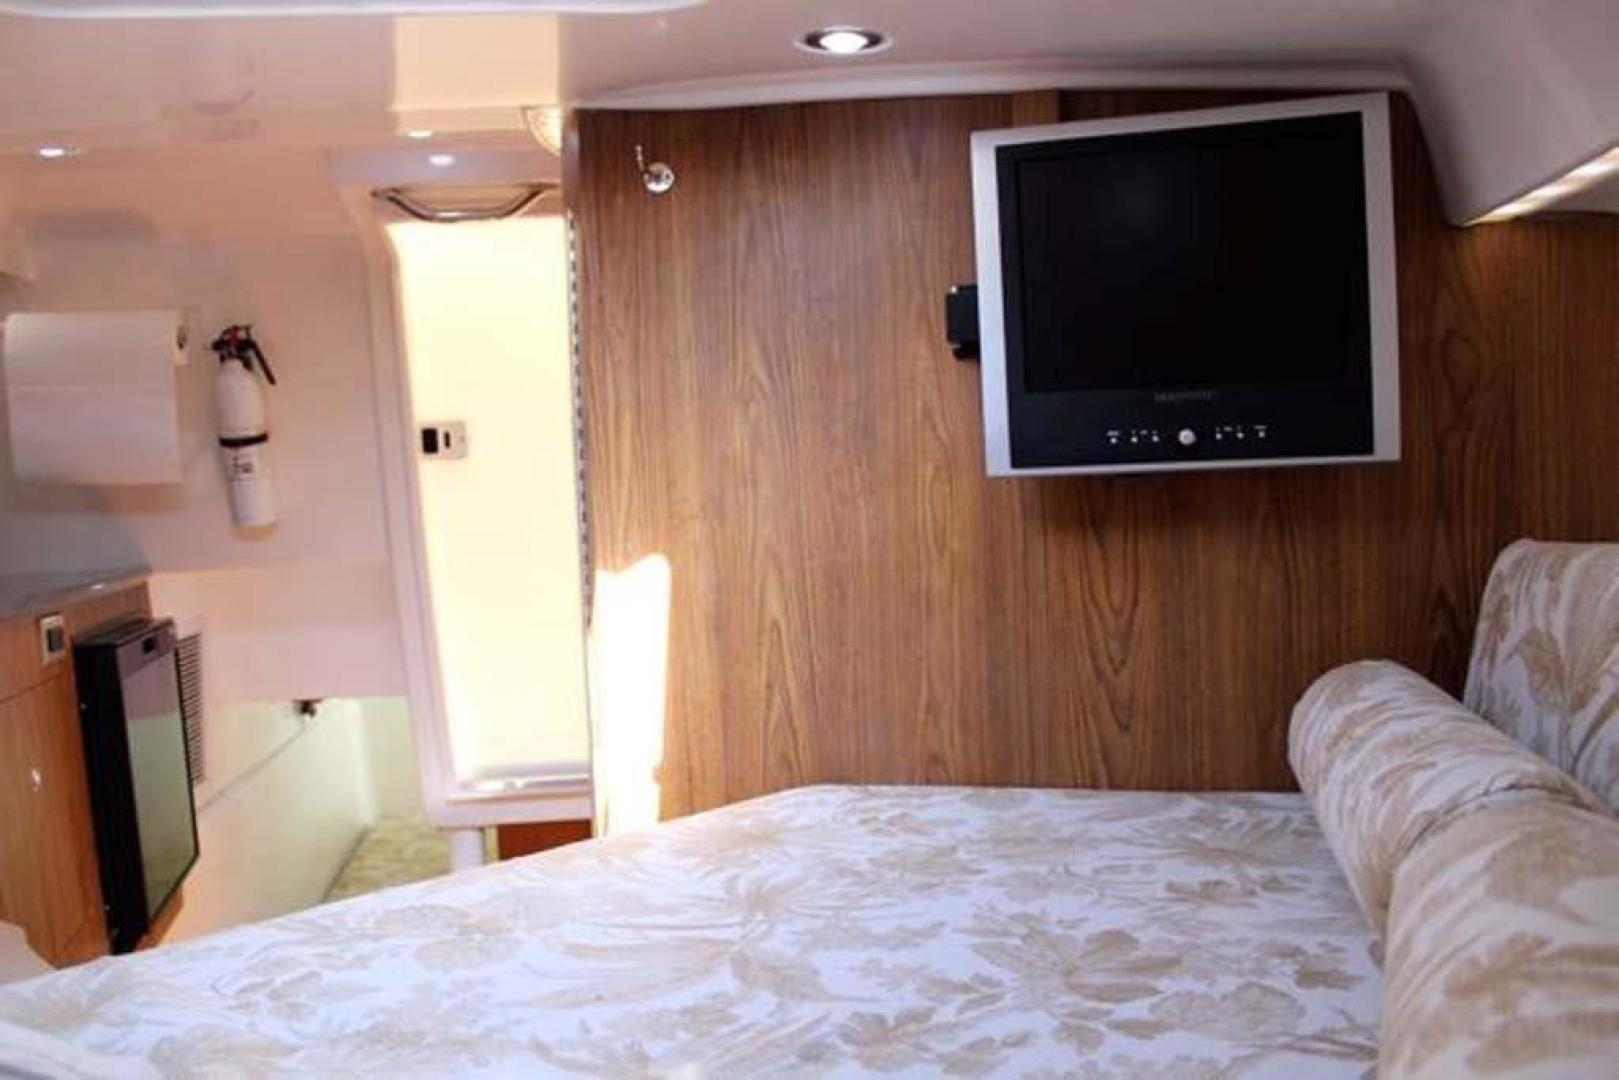 Everglades-35 LX NEW POWER 2010 -Delray Beach-Florida-United States-Cabin TV-923993 | Thumbnail